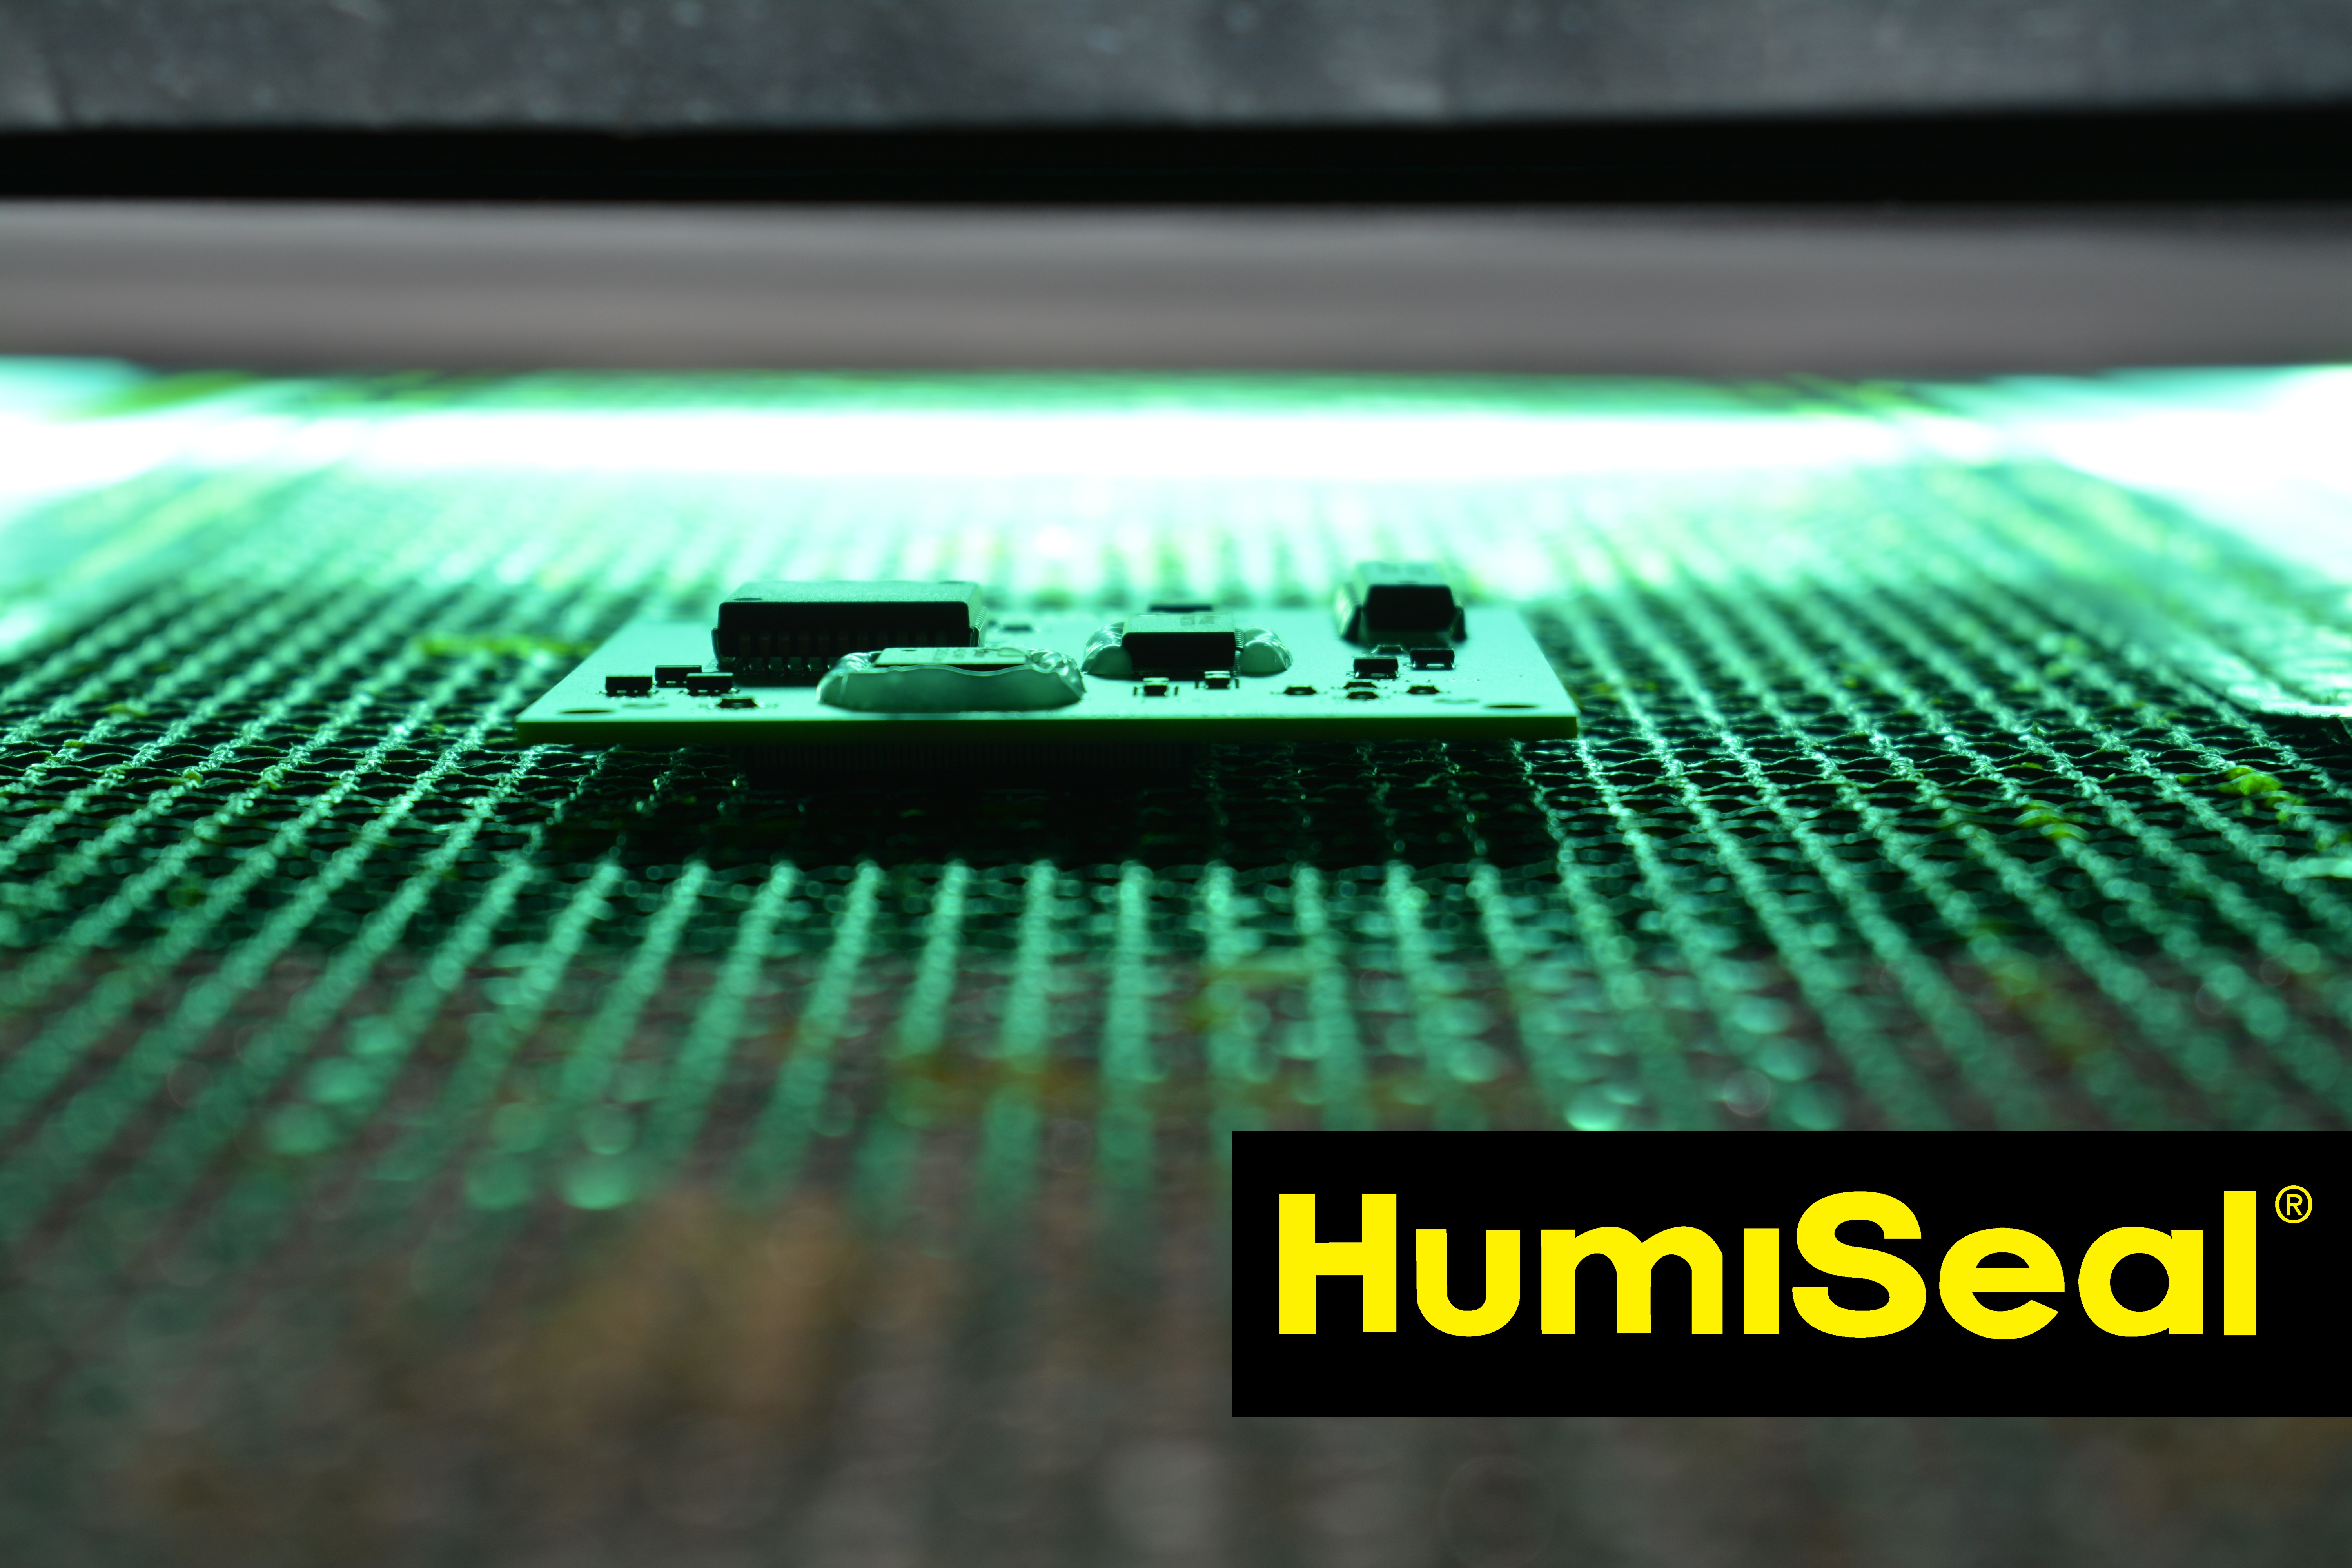 Curing HumiSeal Conformal Coatings with UV light